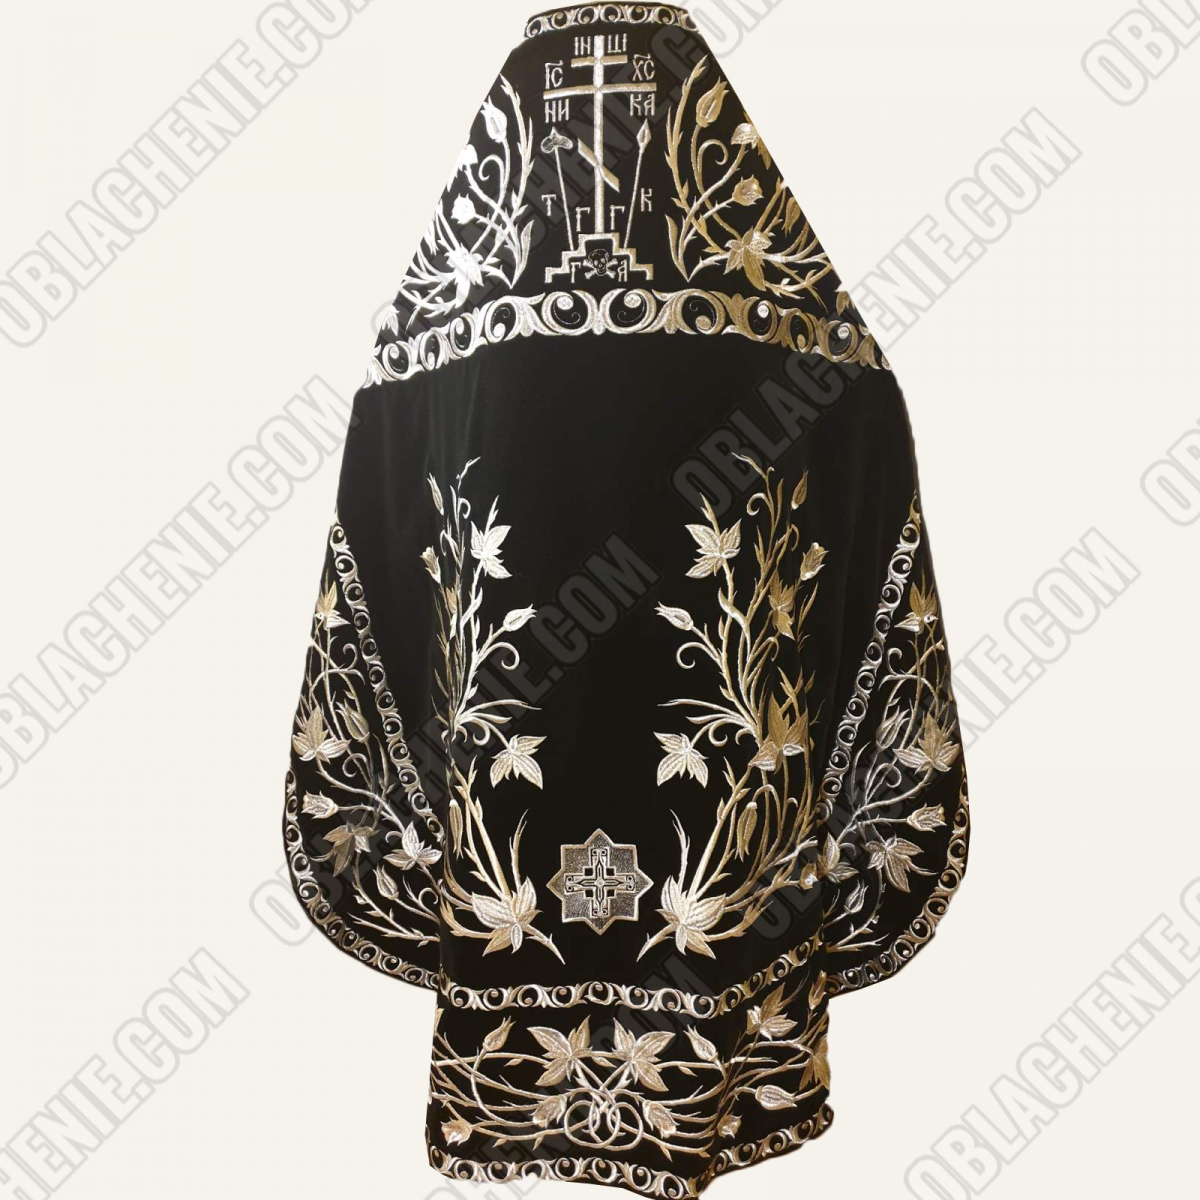 EMBROIDERED PRIEST'S VESTMENTS 11312